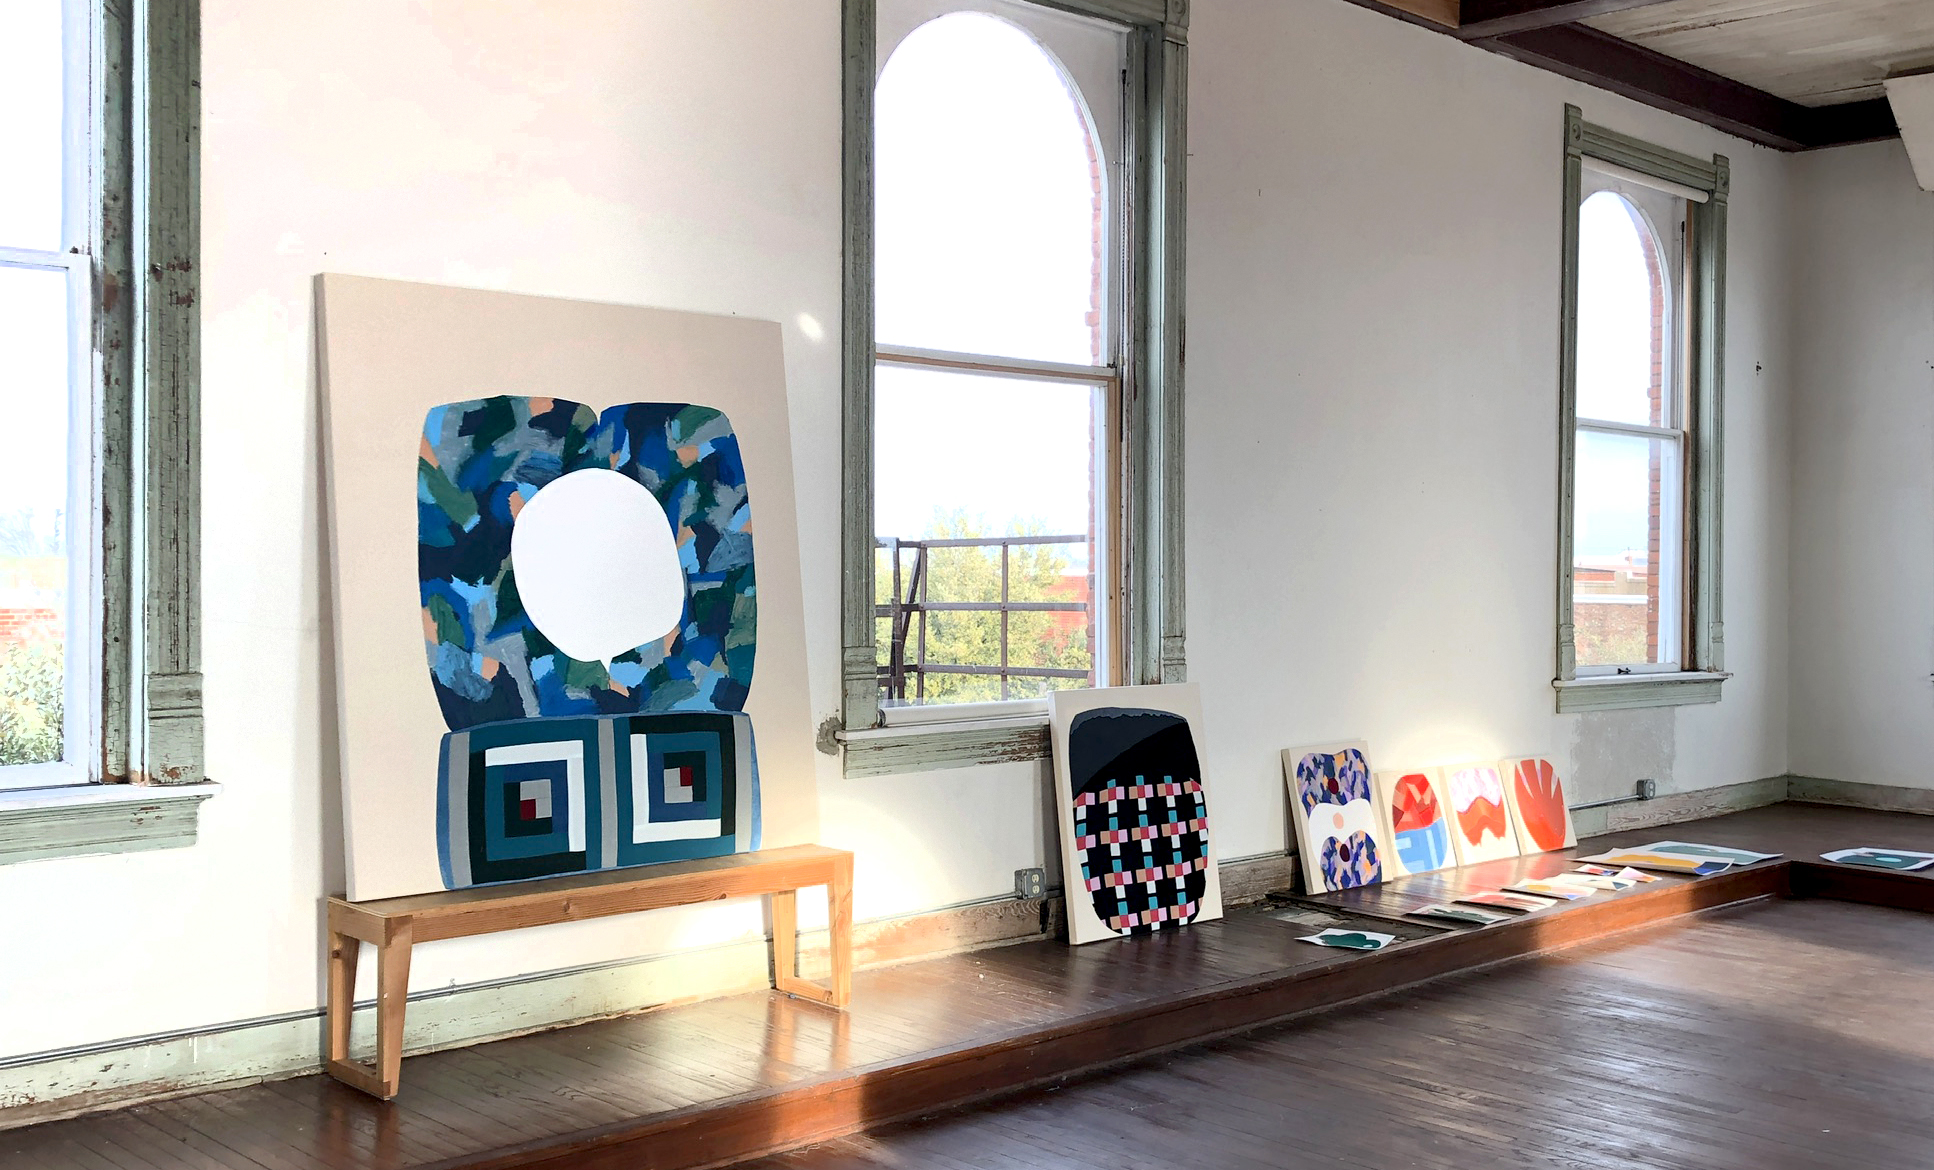 3rd Floor Studio view and a selection of works by Amanda Valdez, Feb-March 2019, to be shown at The Landing Gallery in Los Angeles.  Embroidery, hand-dyed fabric, fabric, acrylic, oil stick on mounted paper, black gesso, and canvas